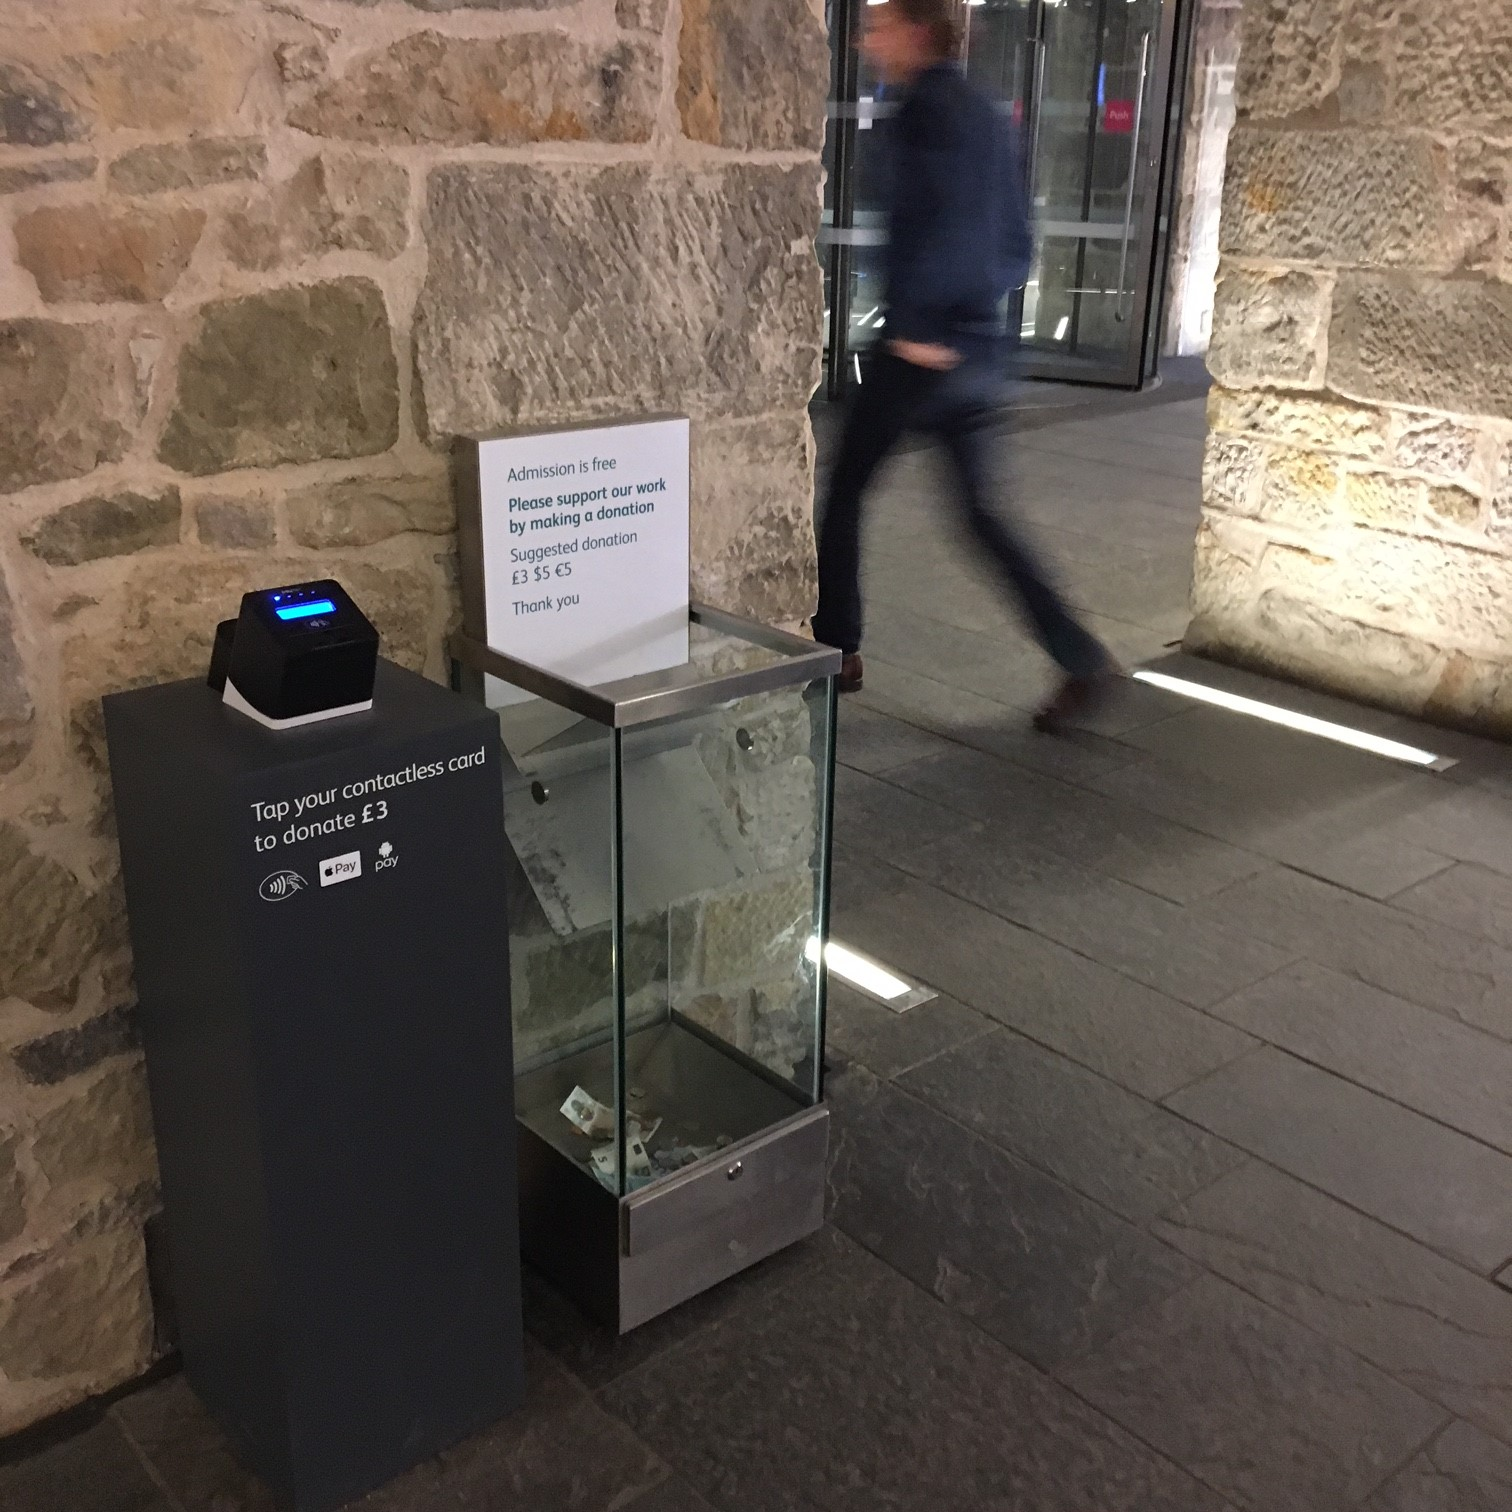 The contactless donation terminal close to the main entrance to the National Museum of Scotland